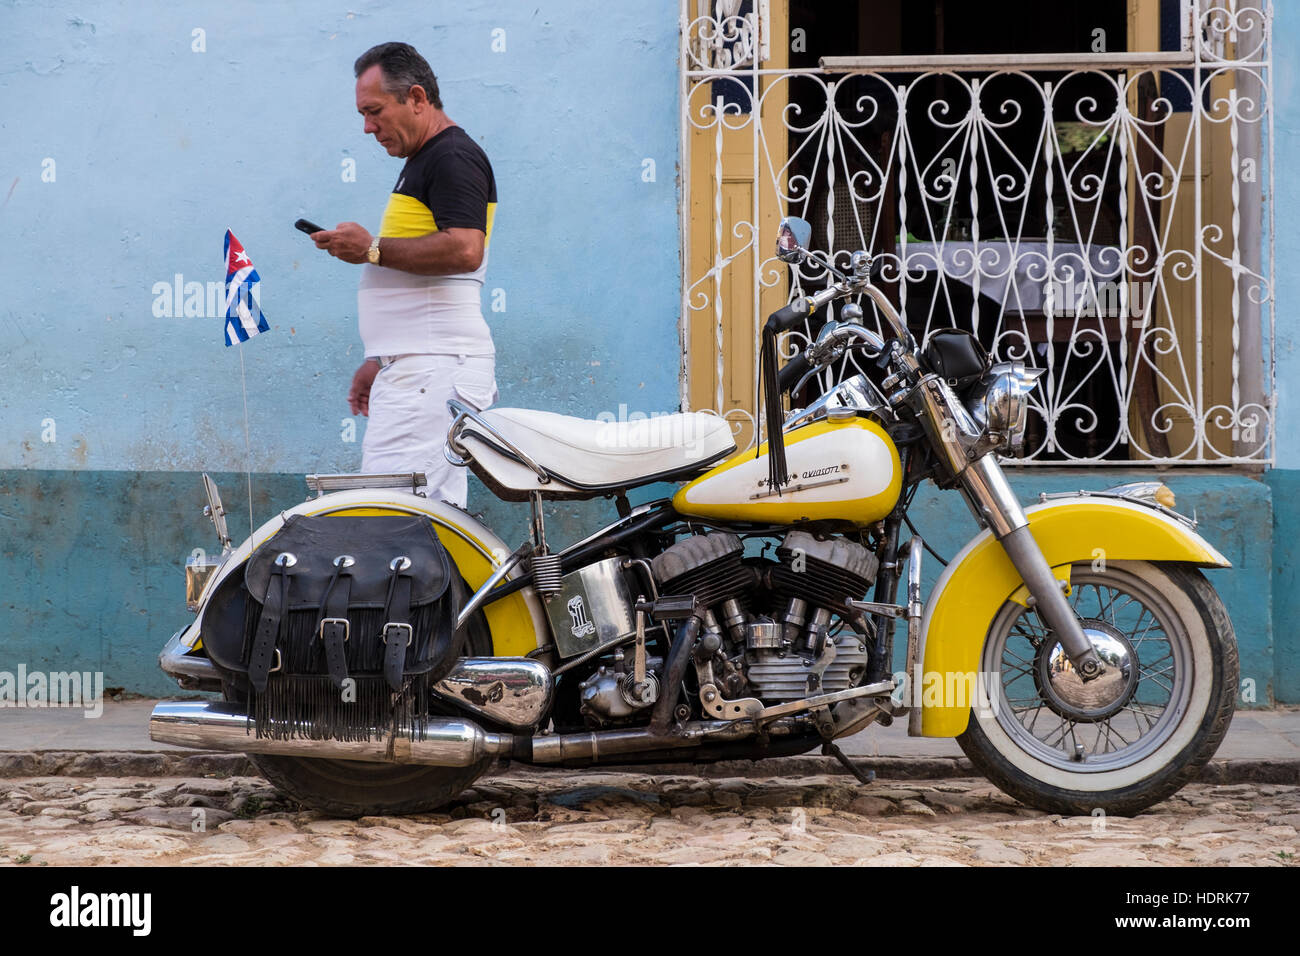 Old american Harley davidson motorcycle parked in Trinidad, Cuba - Stock Image